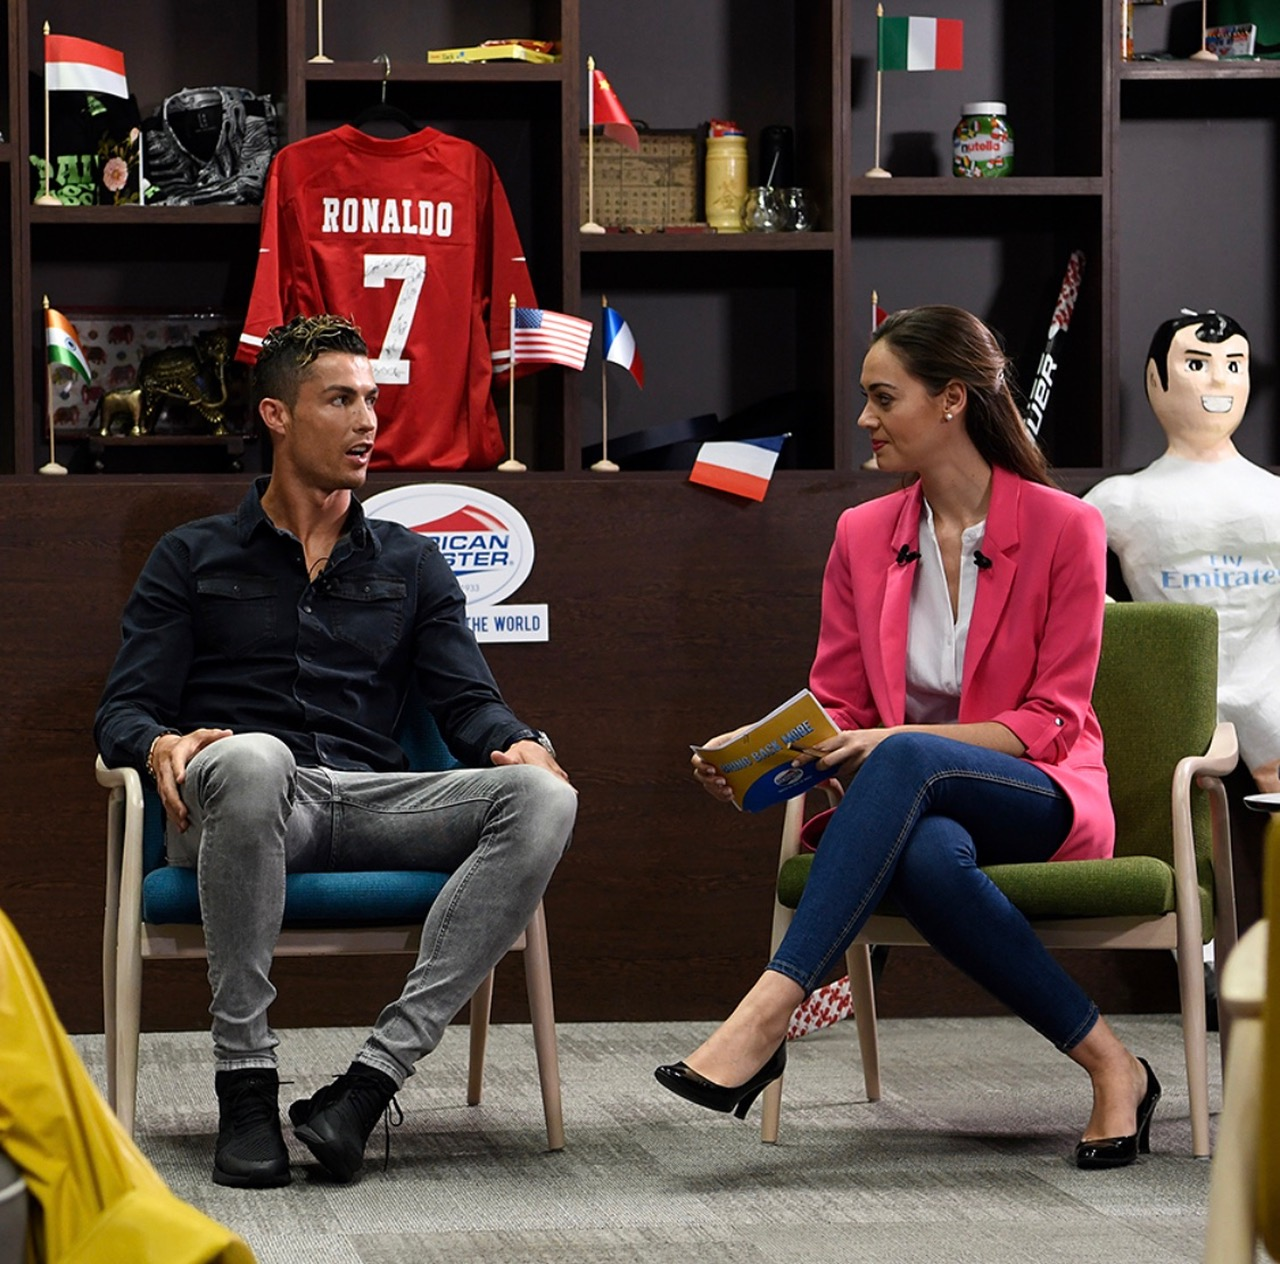 Cristiano Ronaldo - Madrid Spain - Beyond Casual B - American Tourister